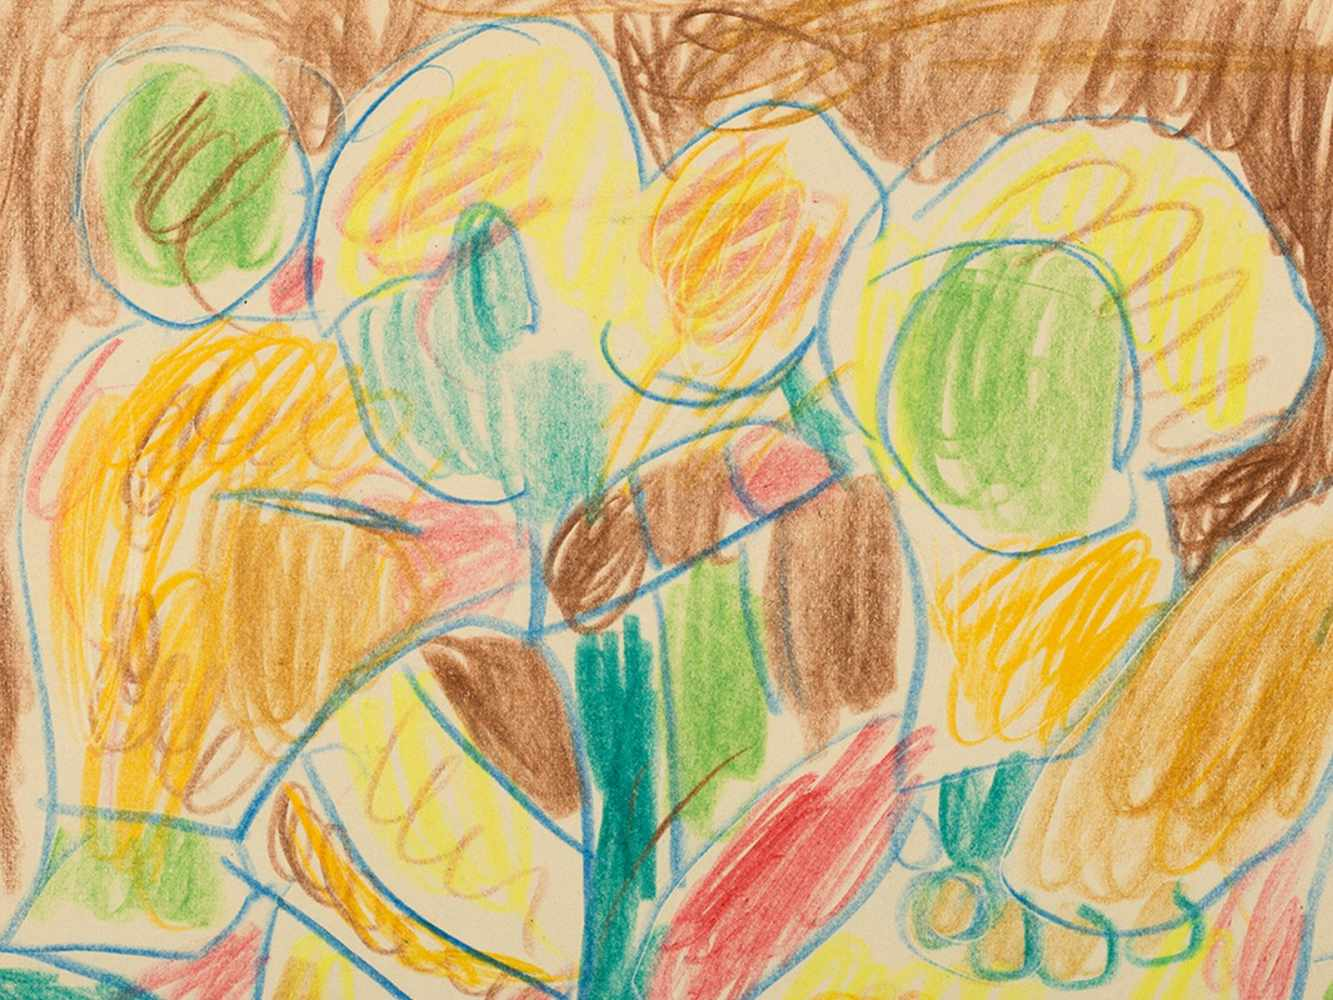 Miklos Németh, Drawing, Colorful Figures, Hungary, 2008< - Image 4 of 7